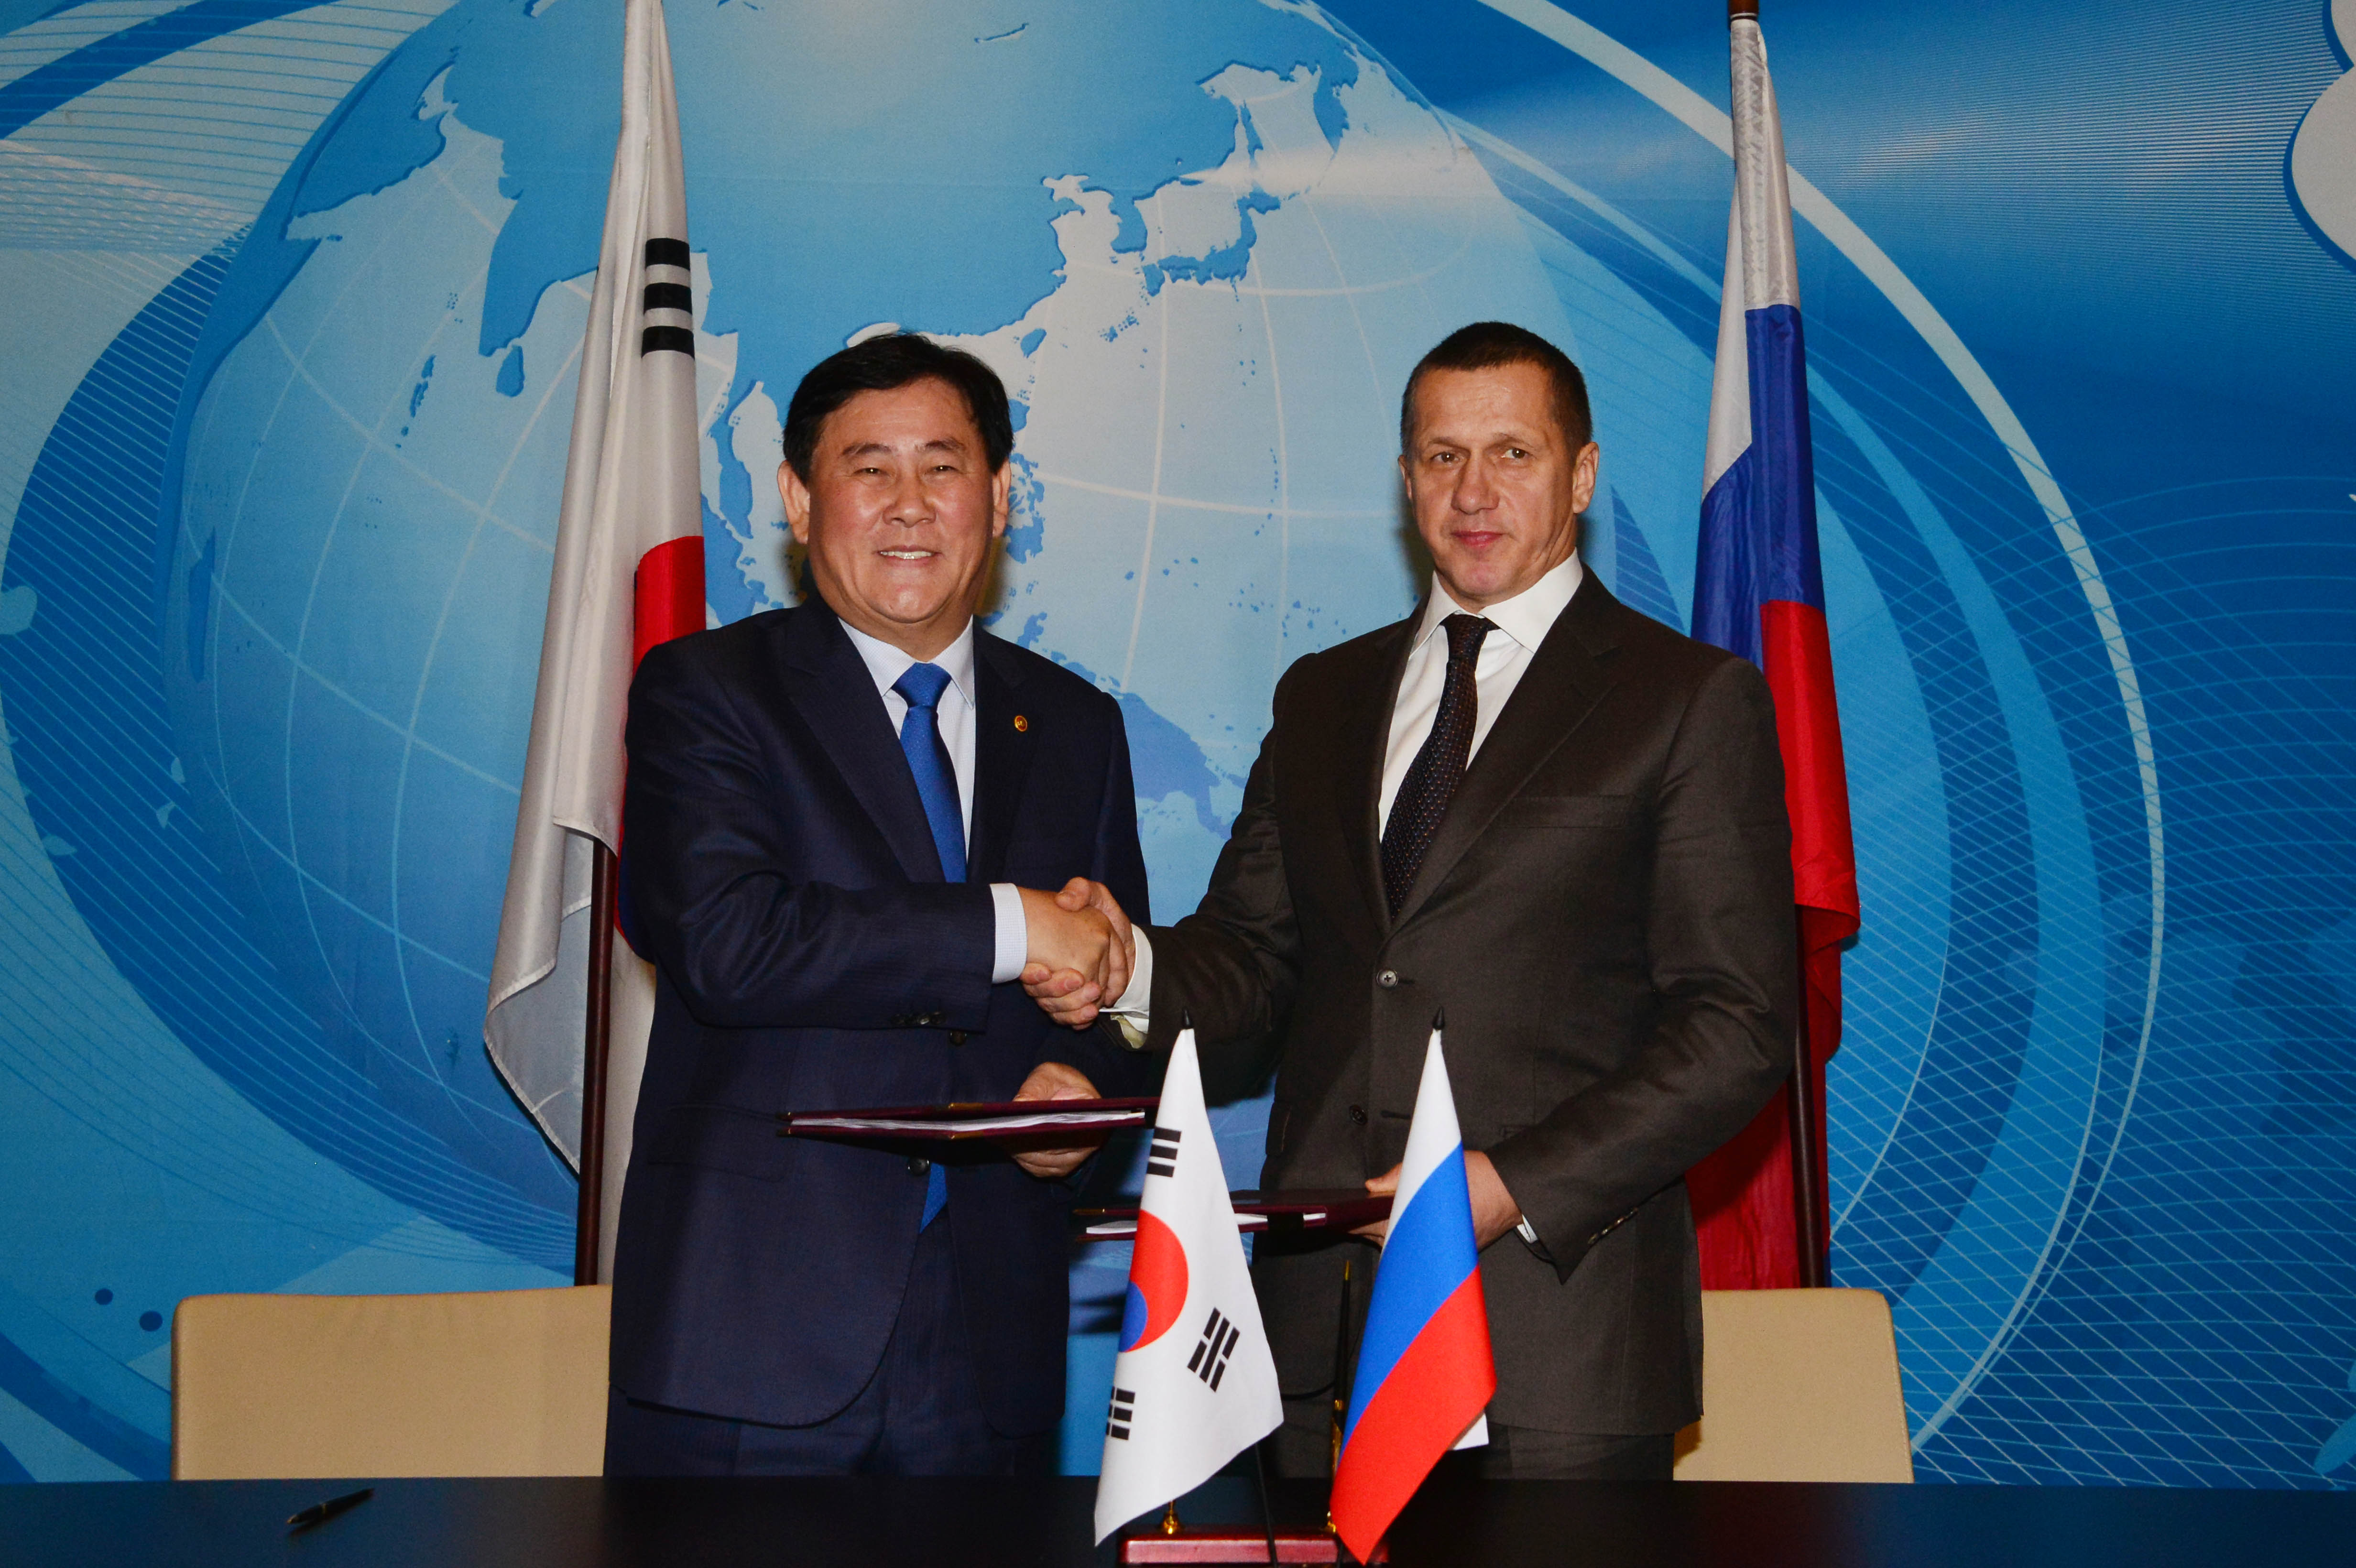 Deputy Prime Minister Choi attends the 14th Meeting of the Korea-Russia Joint Commission on Economic, Scientific and Technological Cooperation